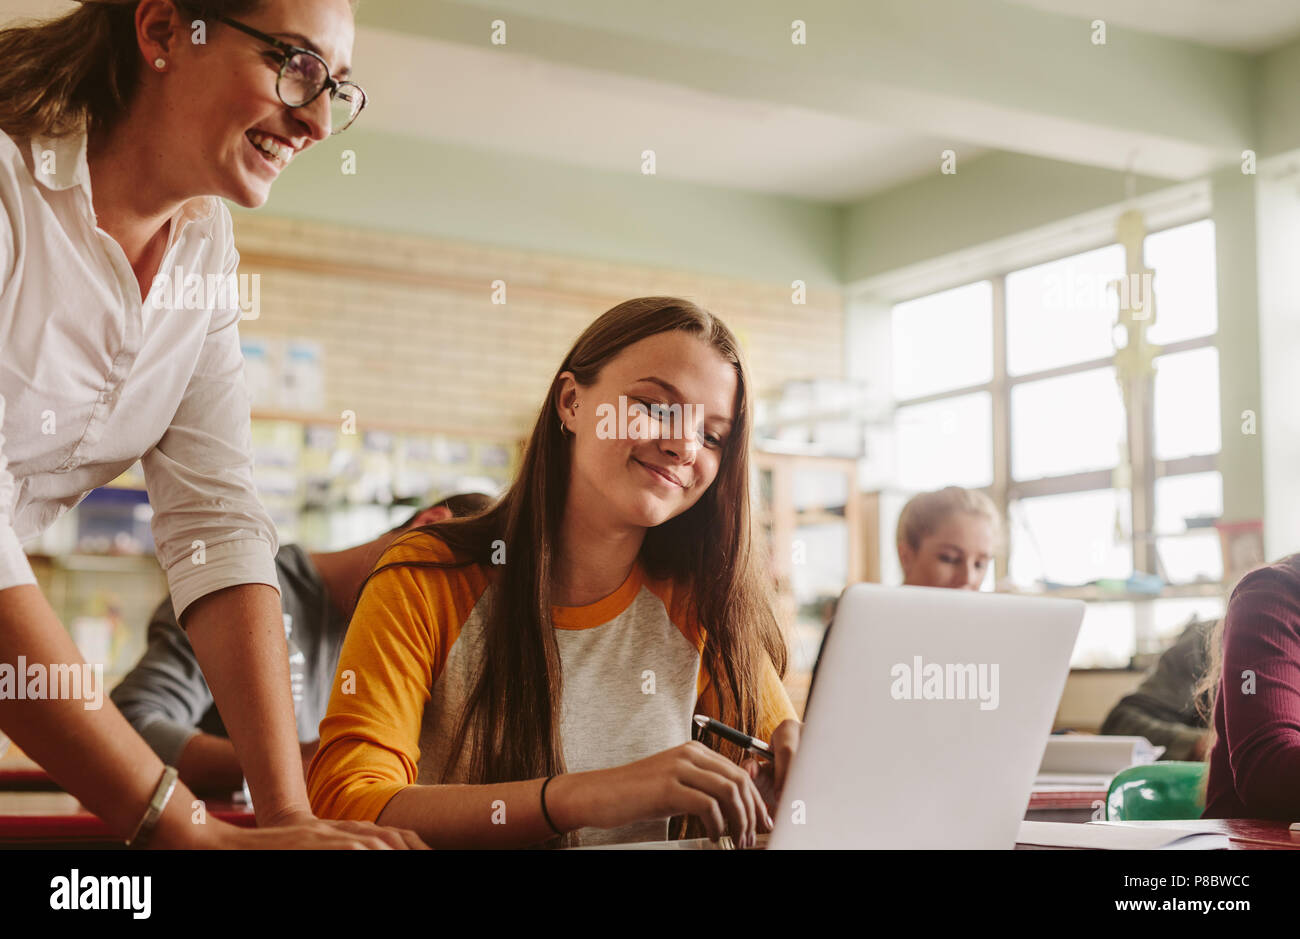 Young woman studying on laptop with teacher standing by in classroom. High school teacher helping student in classroom. - Stock Image